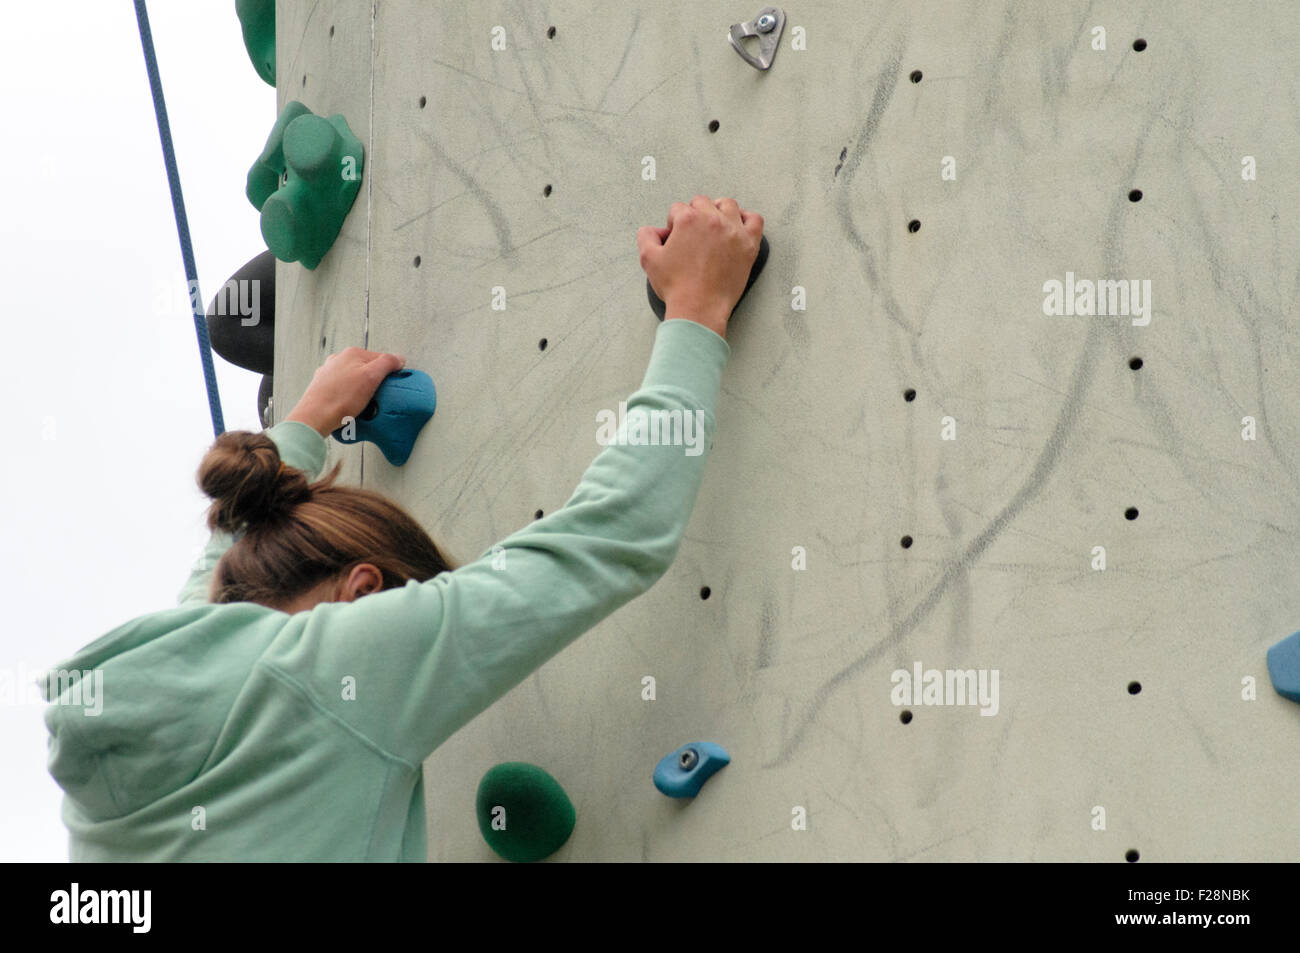 Young teen girl climbs up an artificial climbing wall close up of the hands - Stock Image